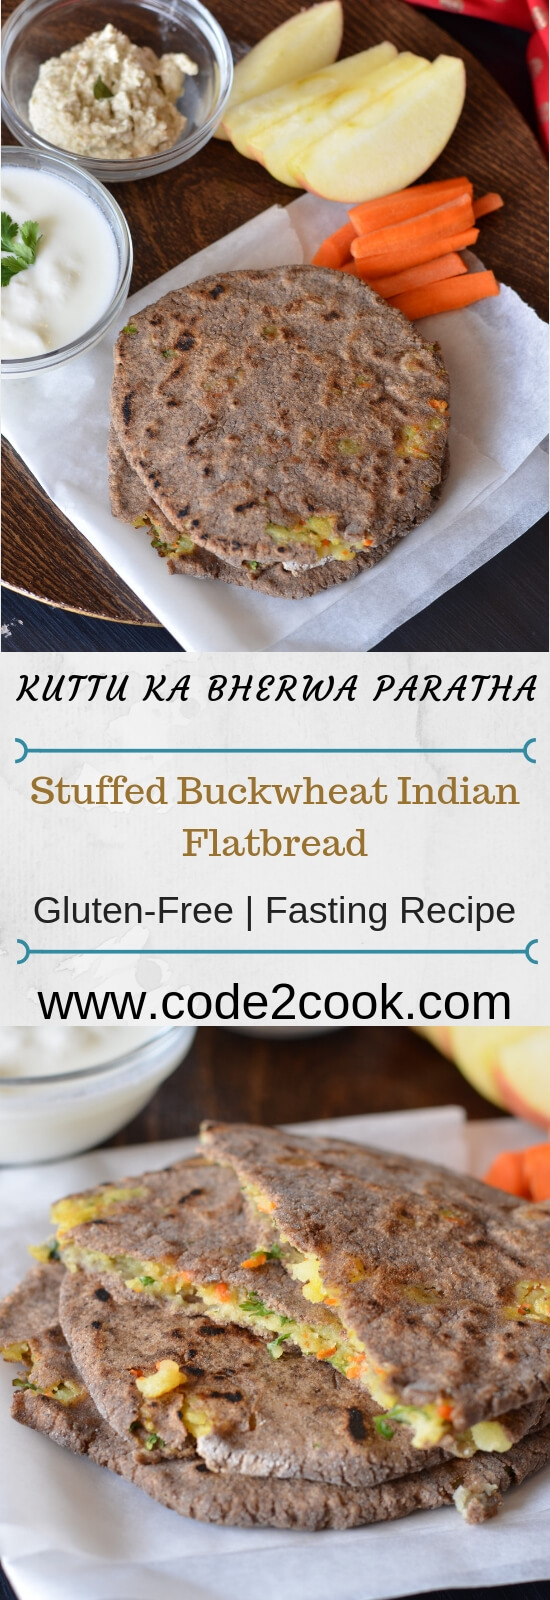 Farali paratha or kuttu ka paratha is a traditional Indian flatbread eaten during Navratri fasting days. Kuttu, also known as buckwheat flour, is commonly used by the majority of people in India during fasting days, especially in Navratri. Bherwa kuttu ka paratha is prepared with spicy potato carrot filling in kuttu flour.